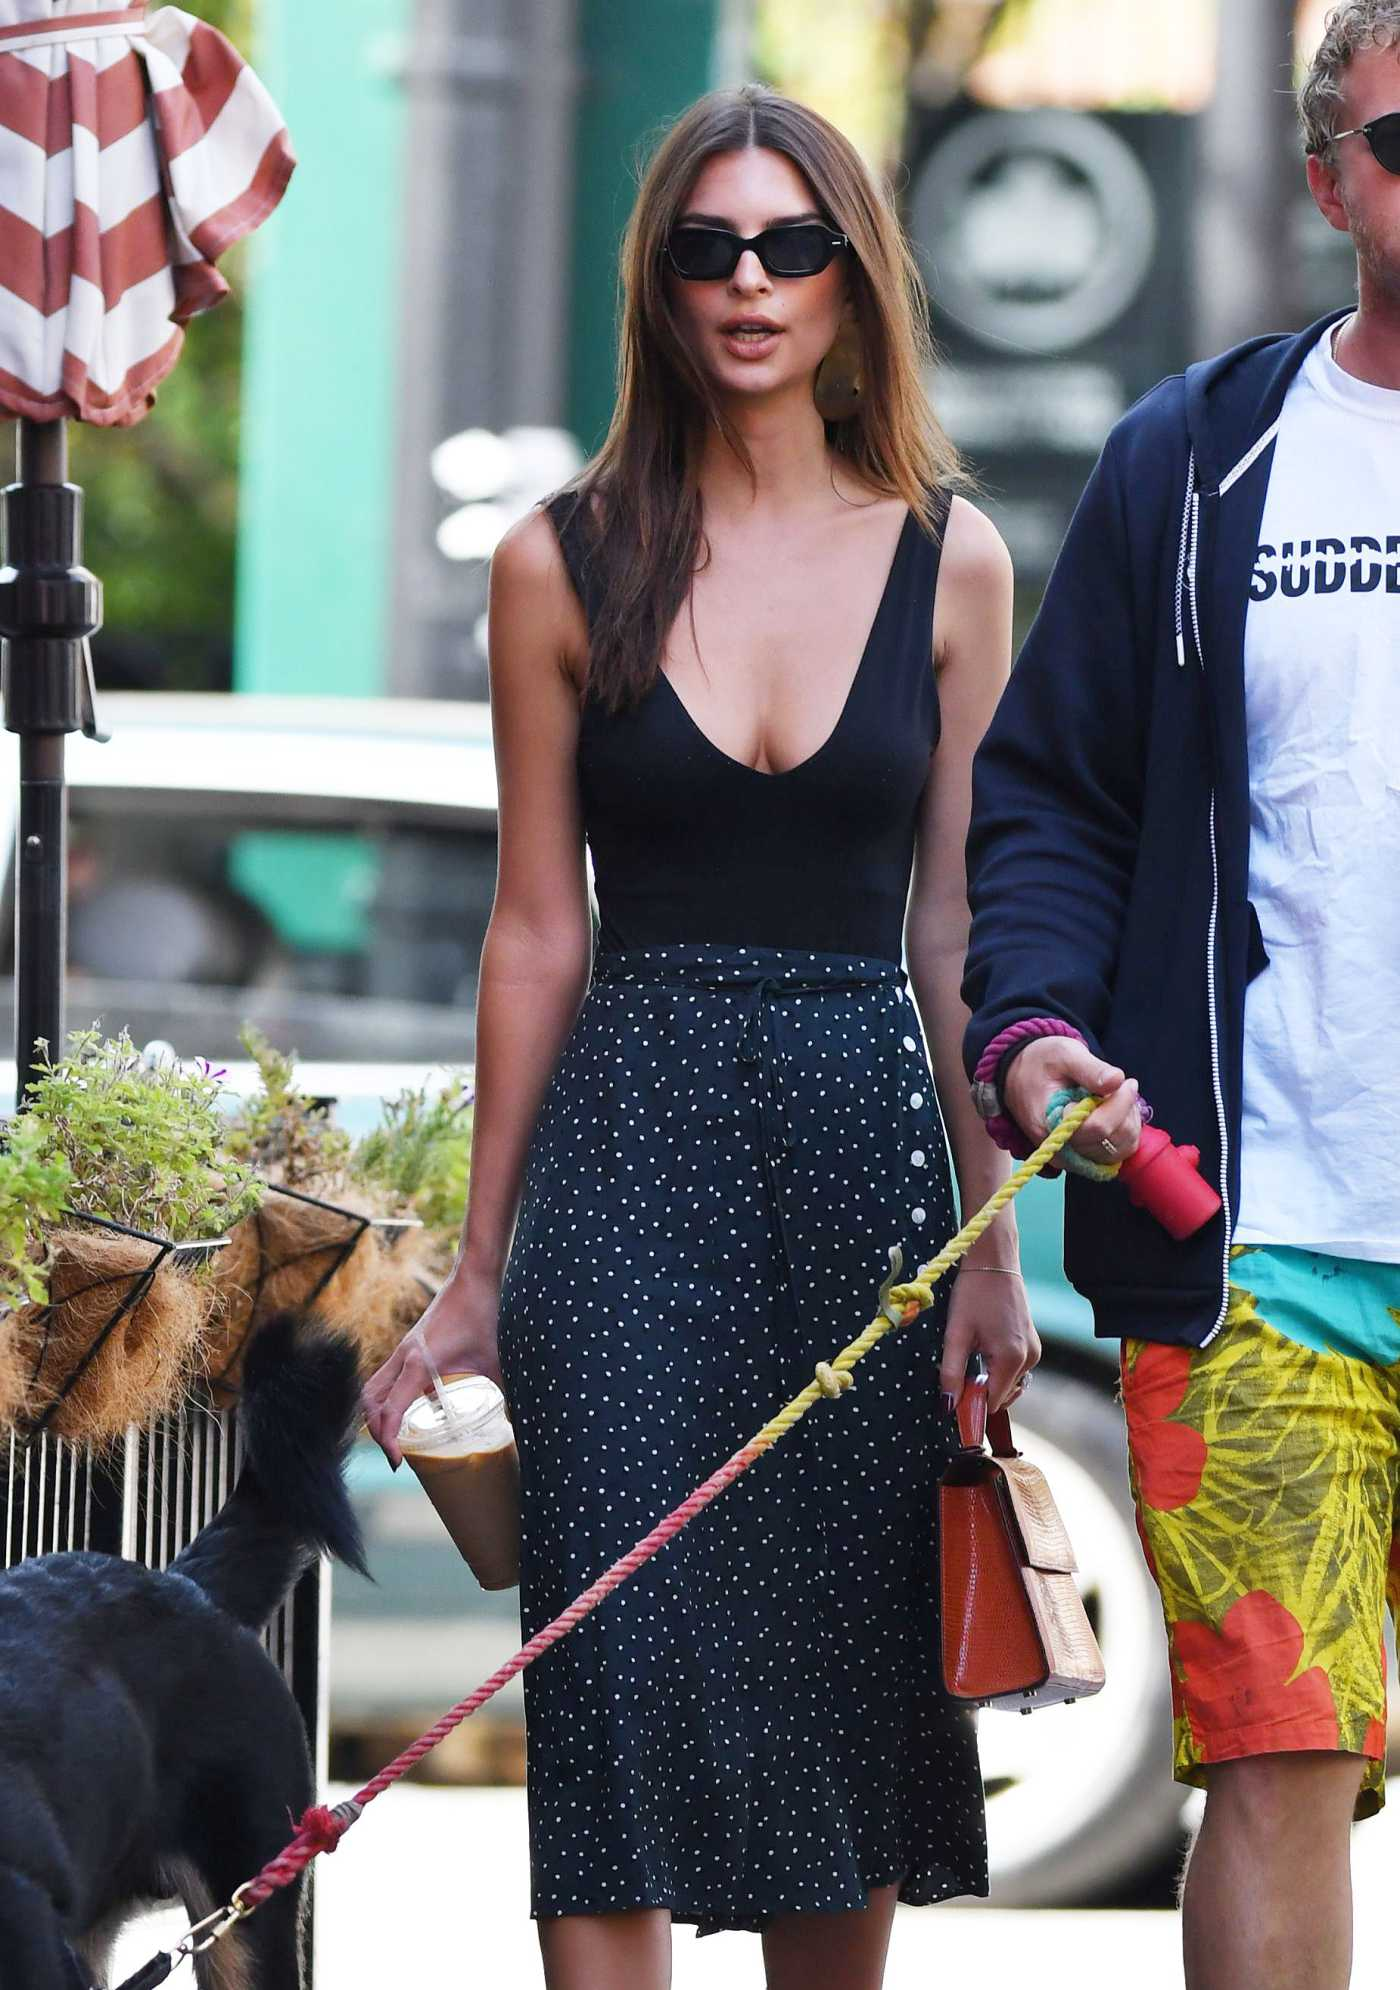 Emily Ratajkowski in a Black Top Was Seen Out with Sebastian Bear-McClard in NY 09/21/2019